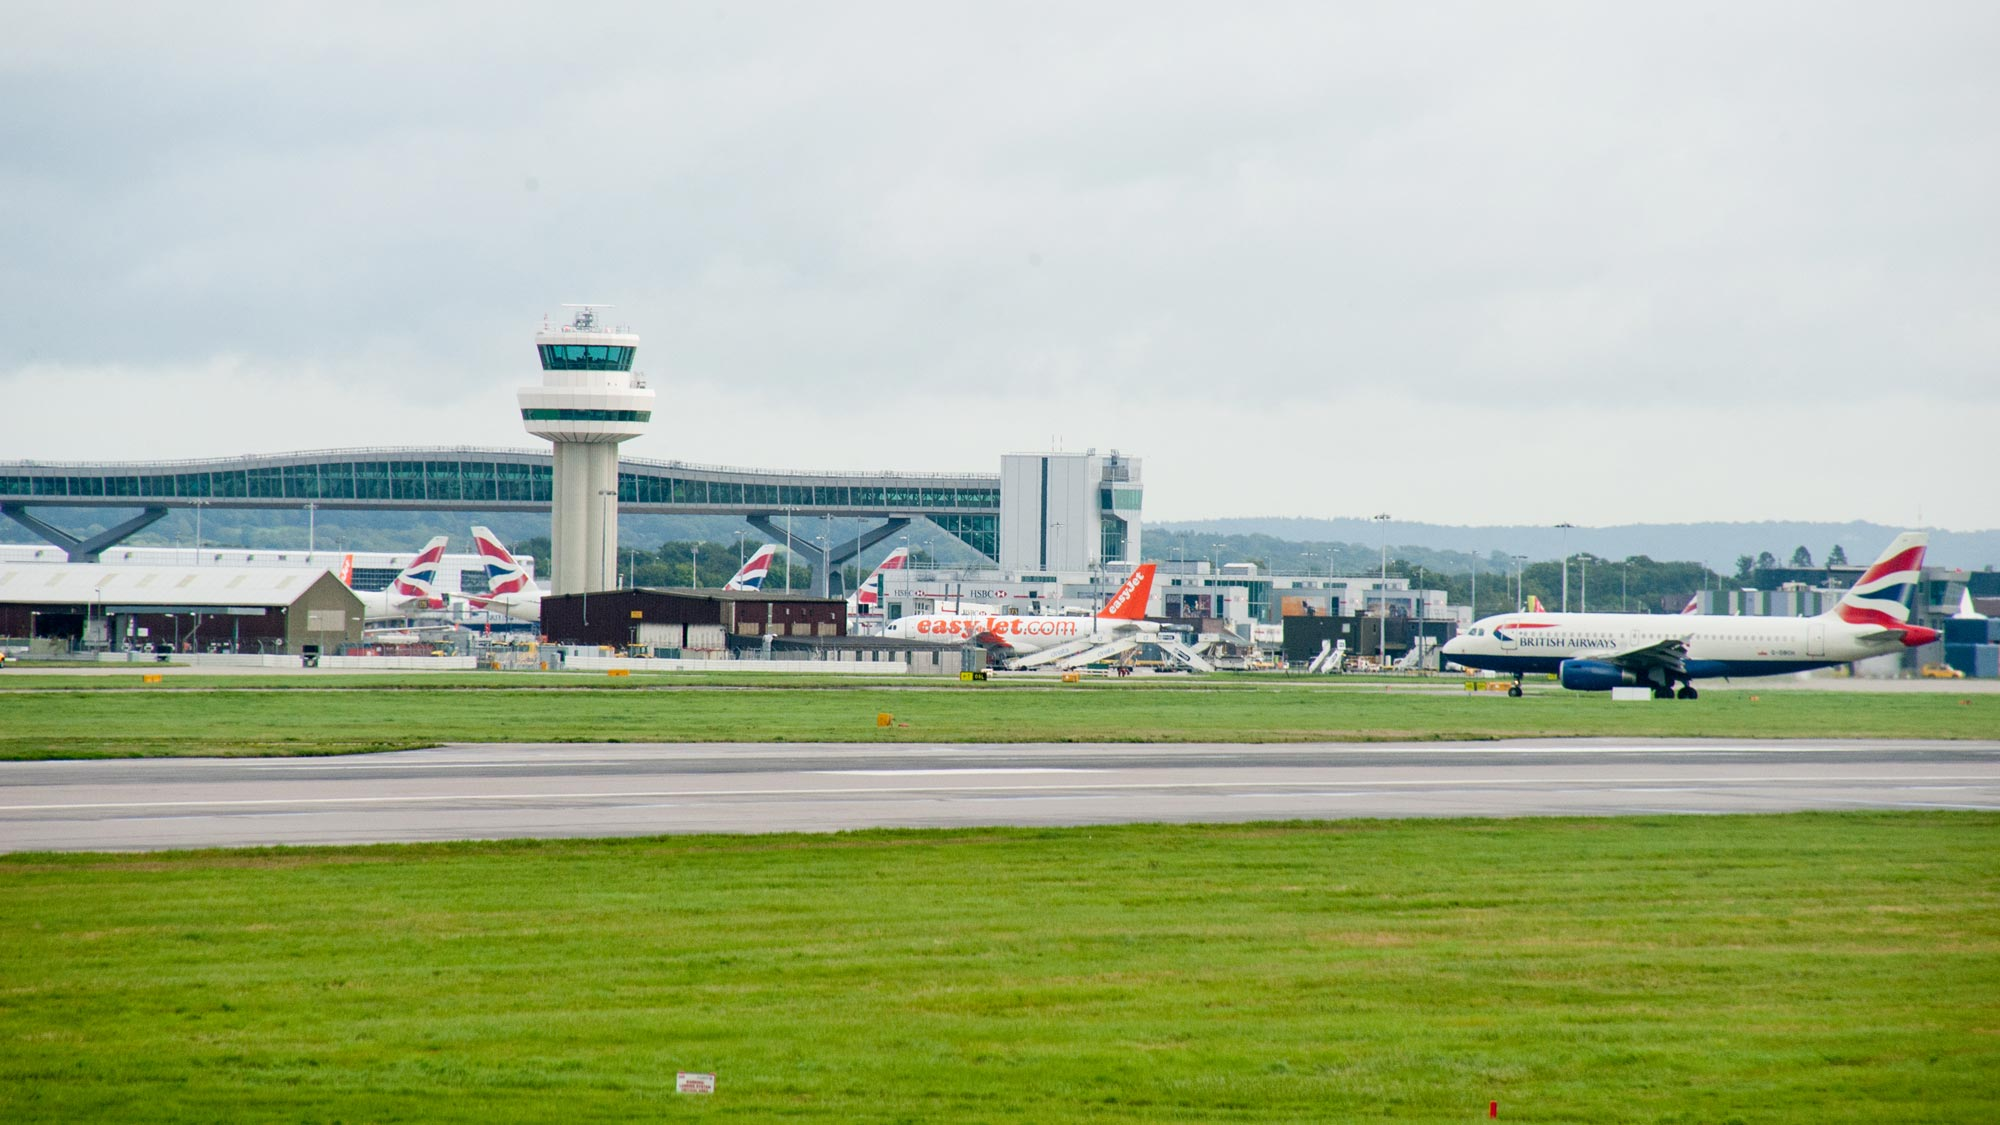 meet and greet parking at london gatwick